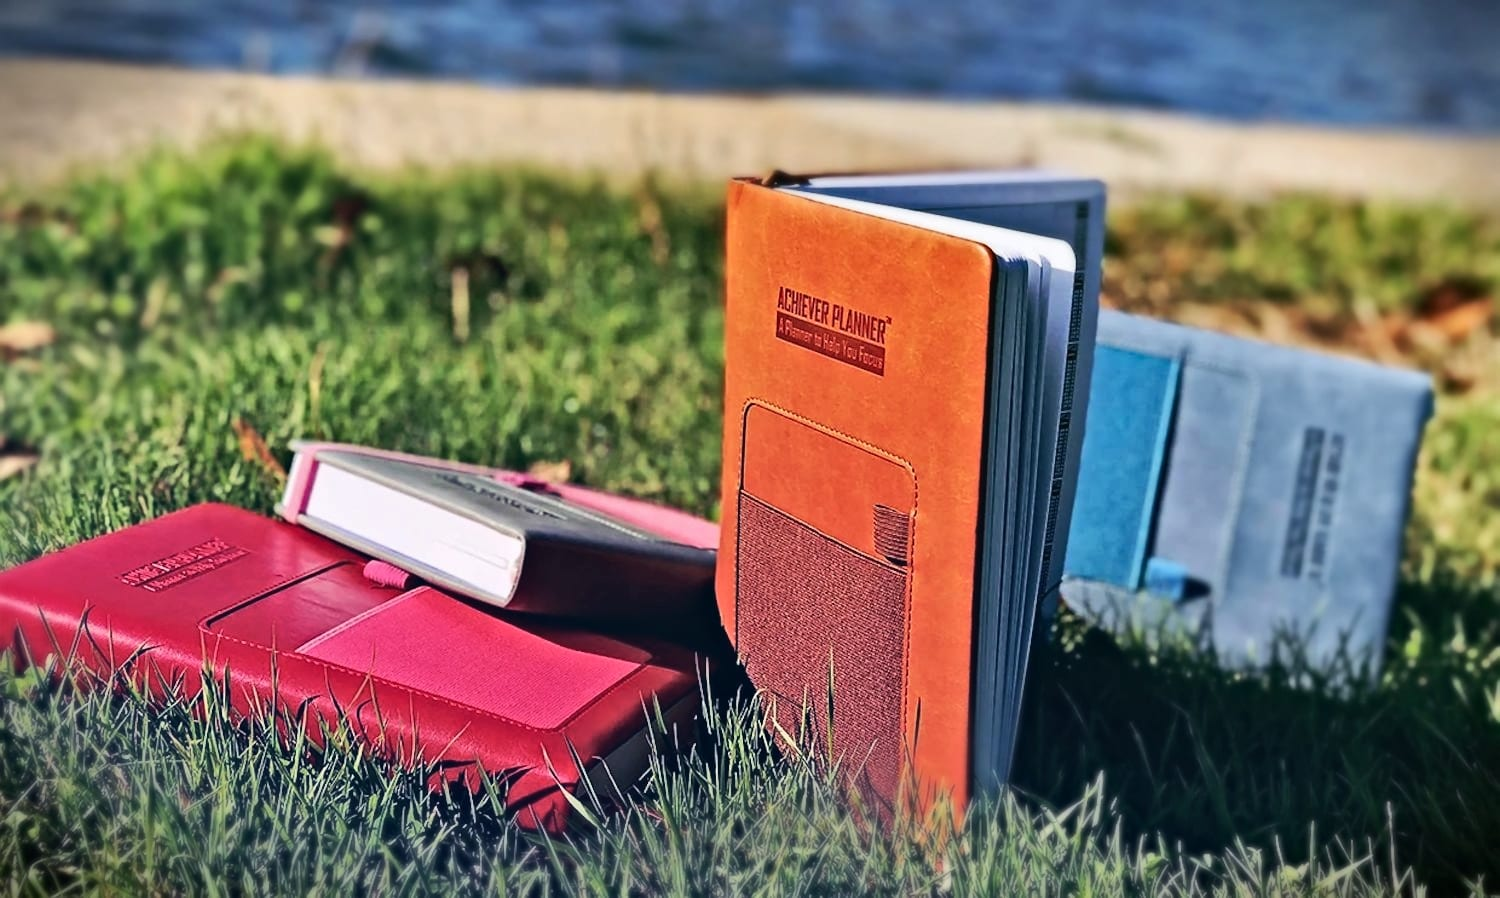 The Achiever Planner by UDLAB Products.